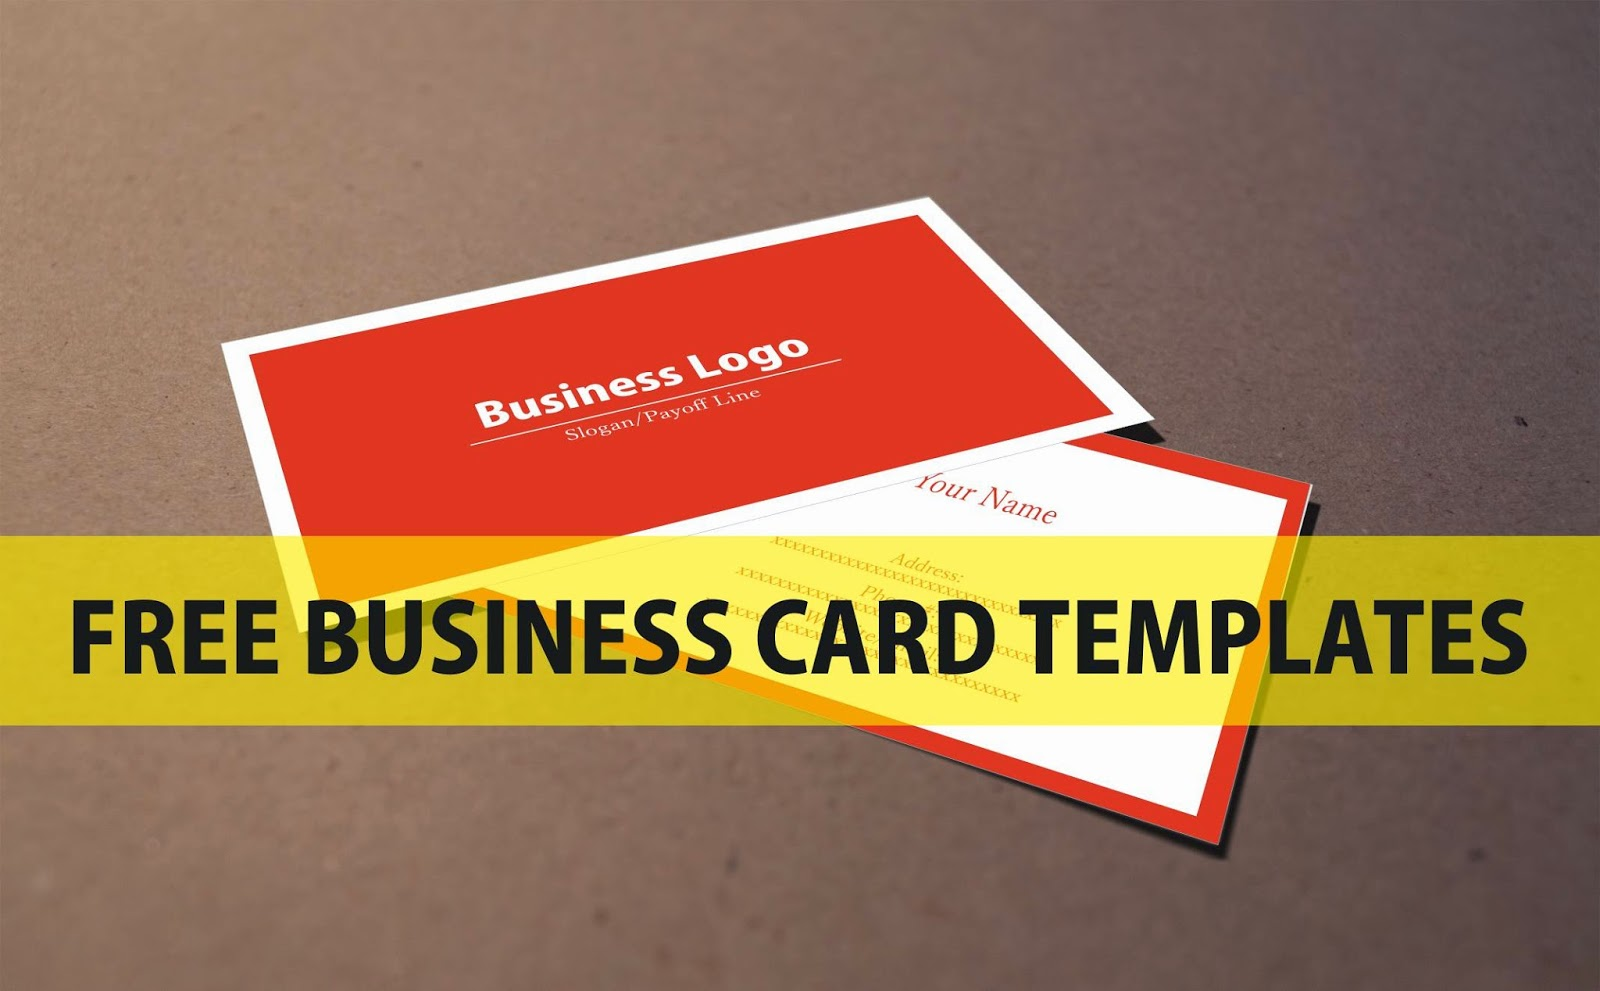 Free business card template download coreldraw file a graphic free business card template download coreldraw file flashek Gallery